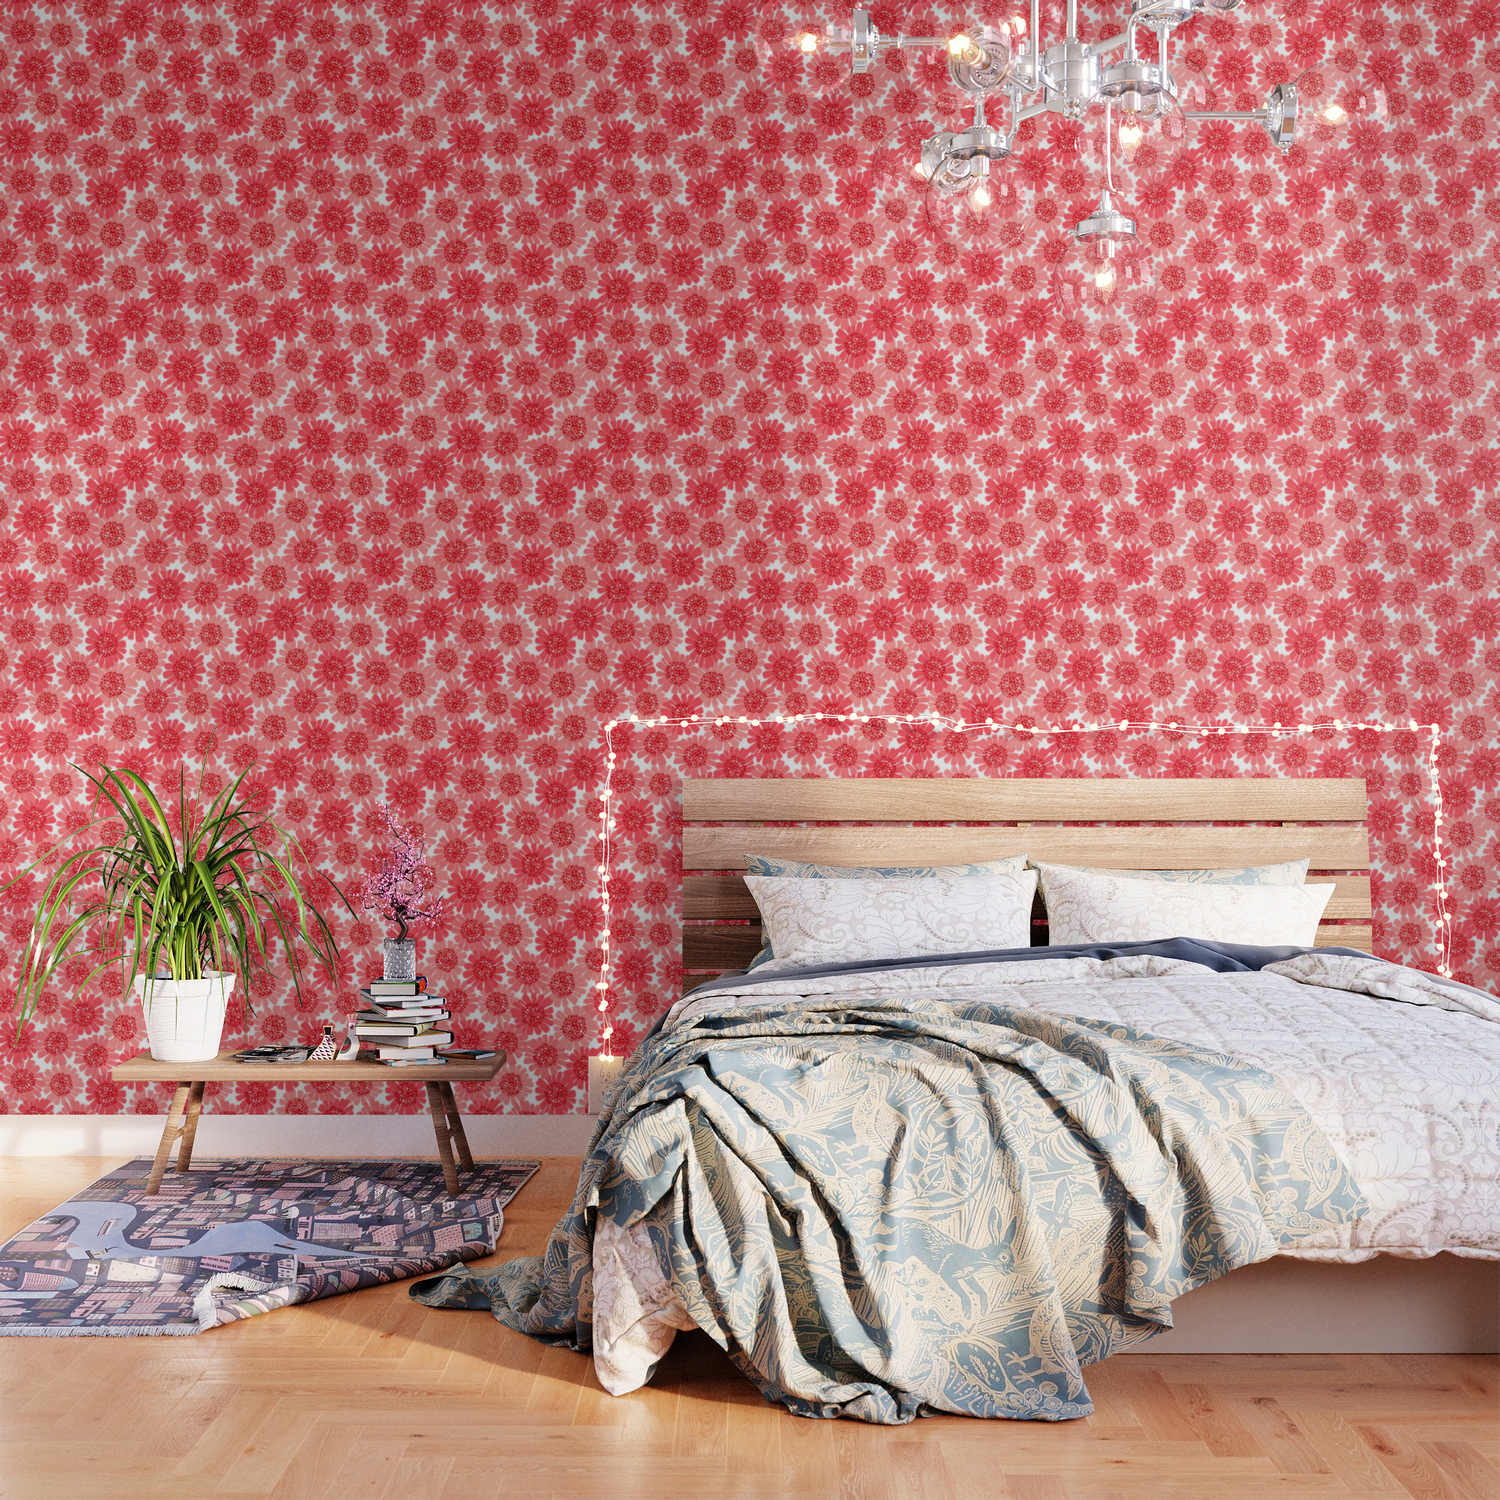 Coral Floral Wallpaper By Nathalierobbins Society6